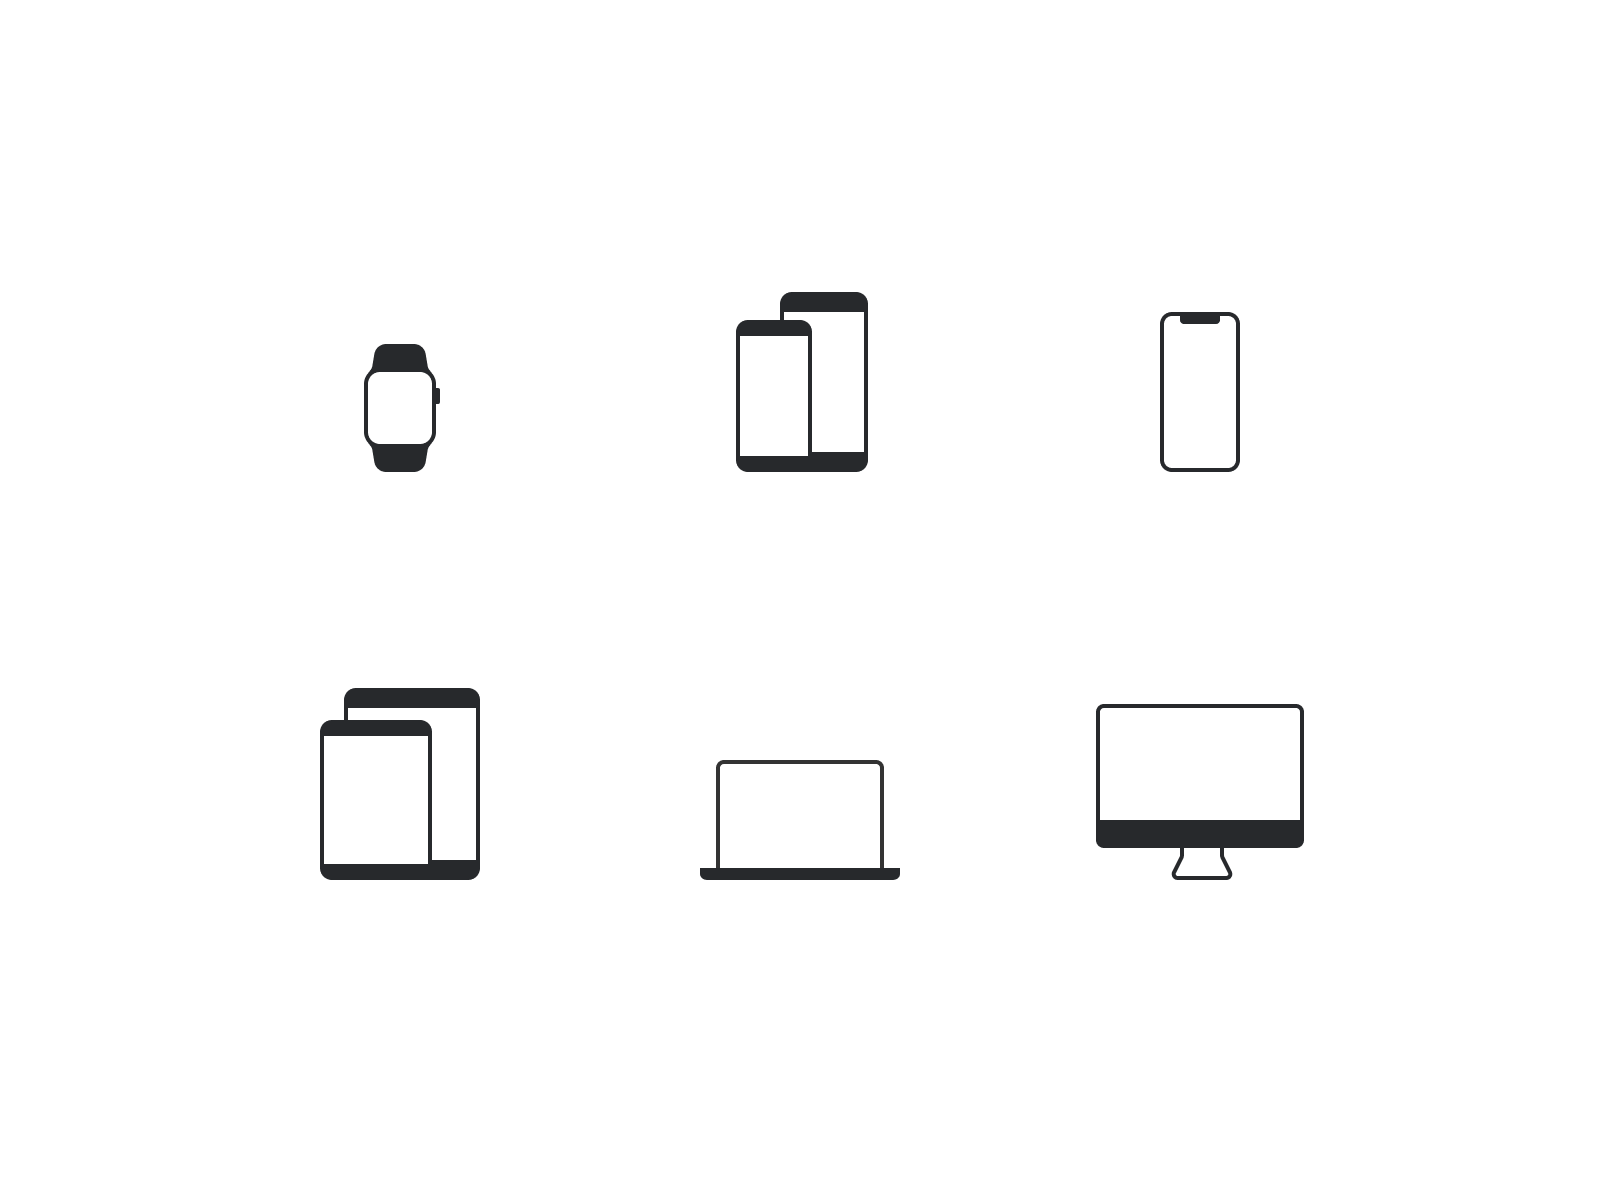 Device icons 4x